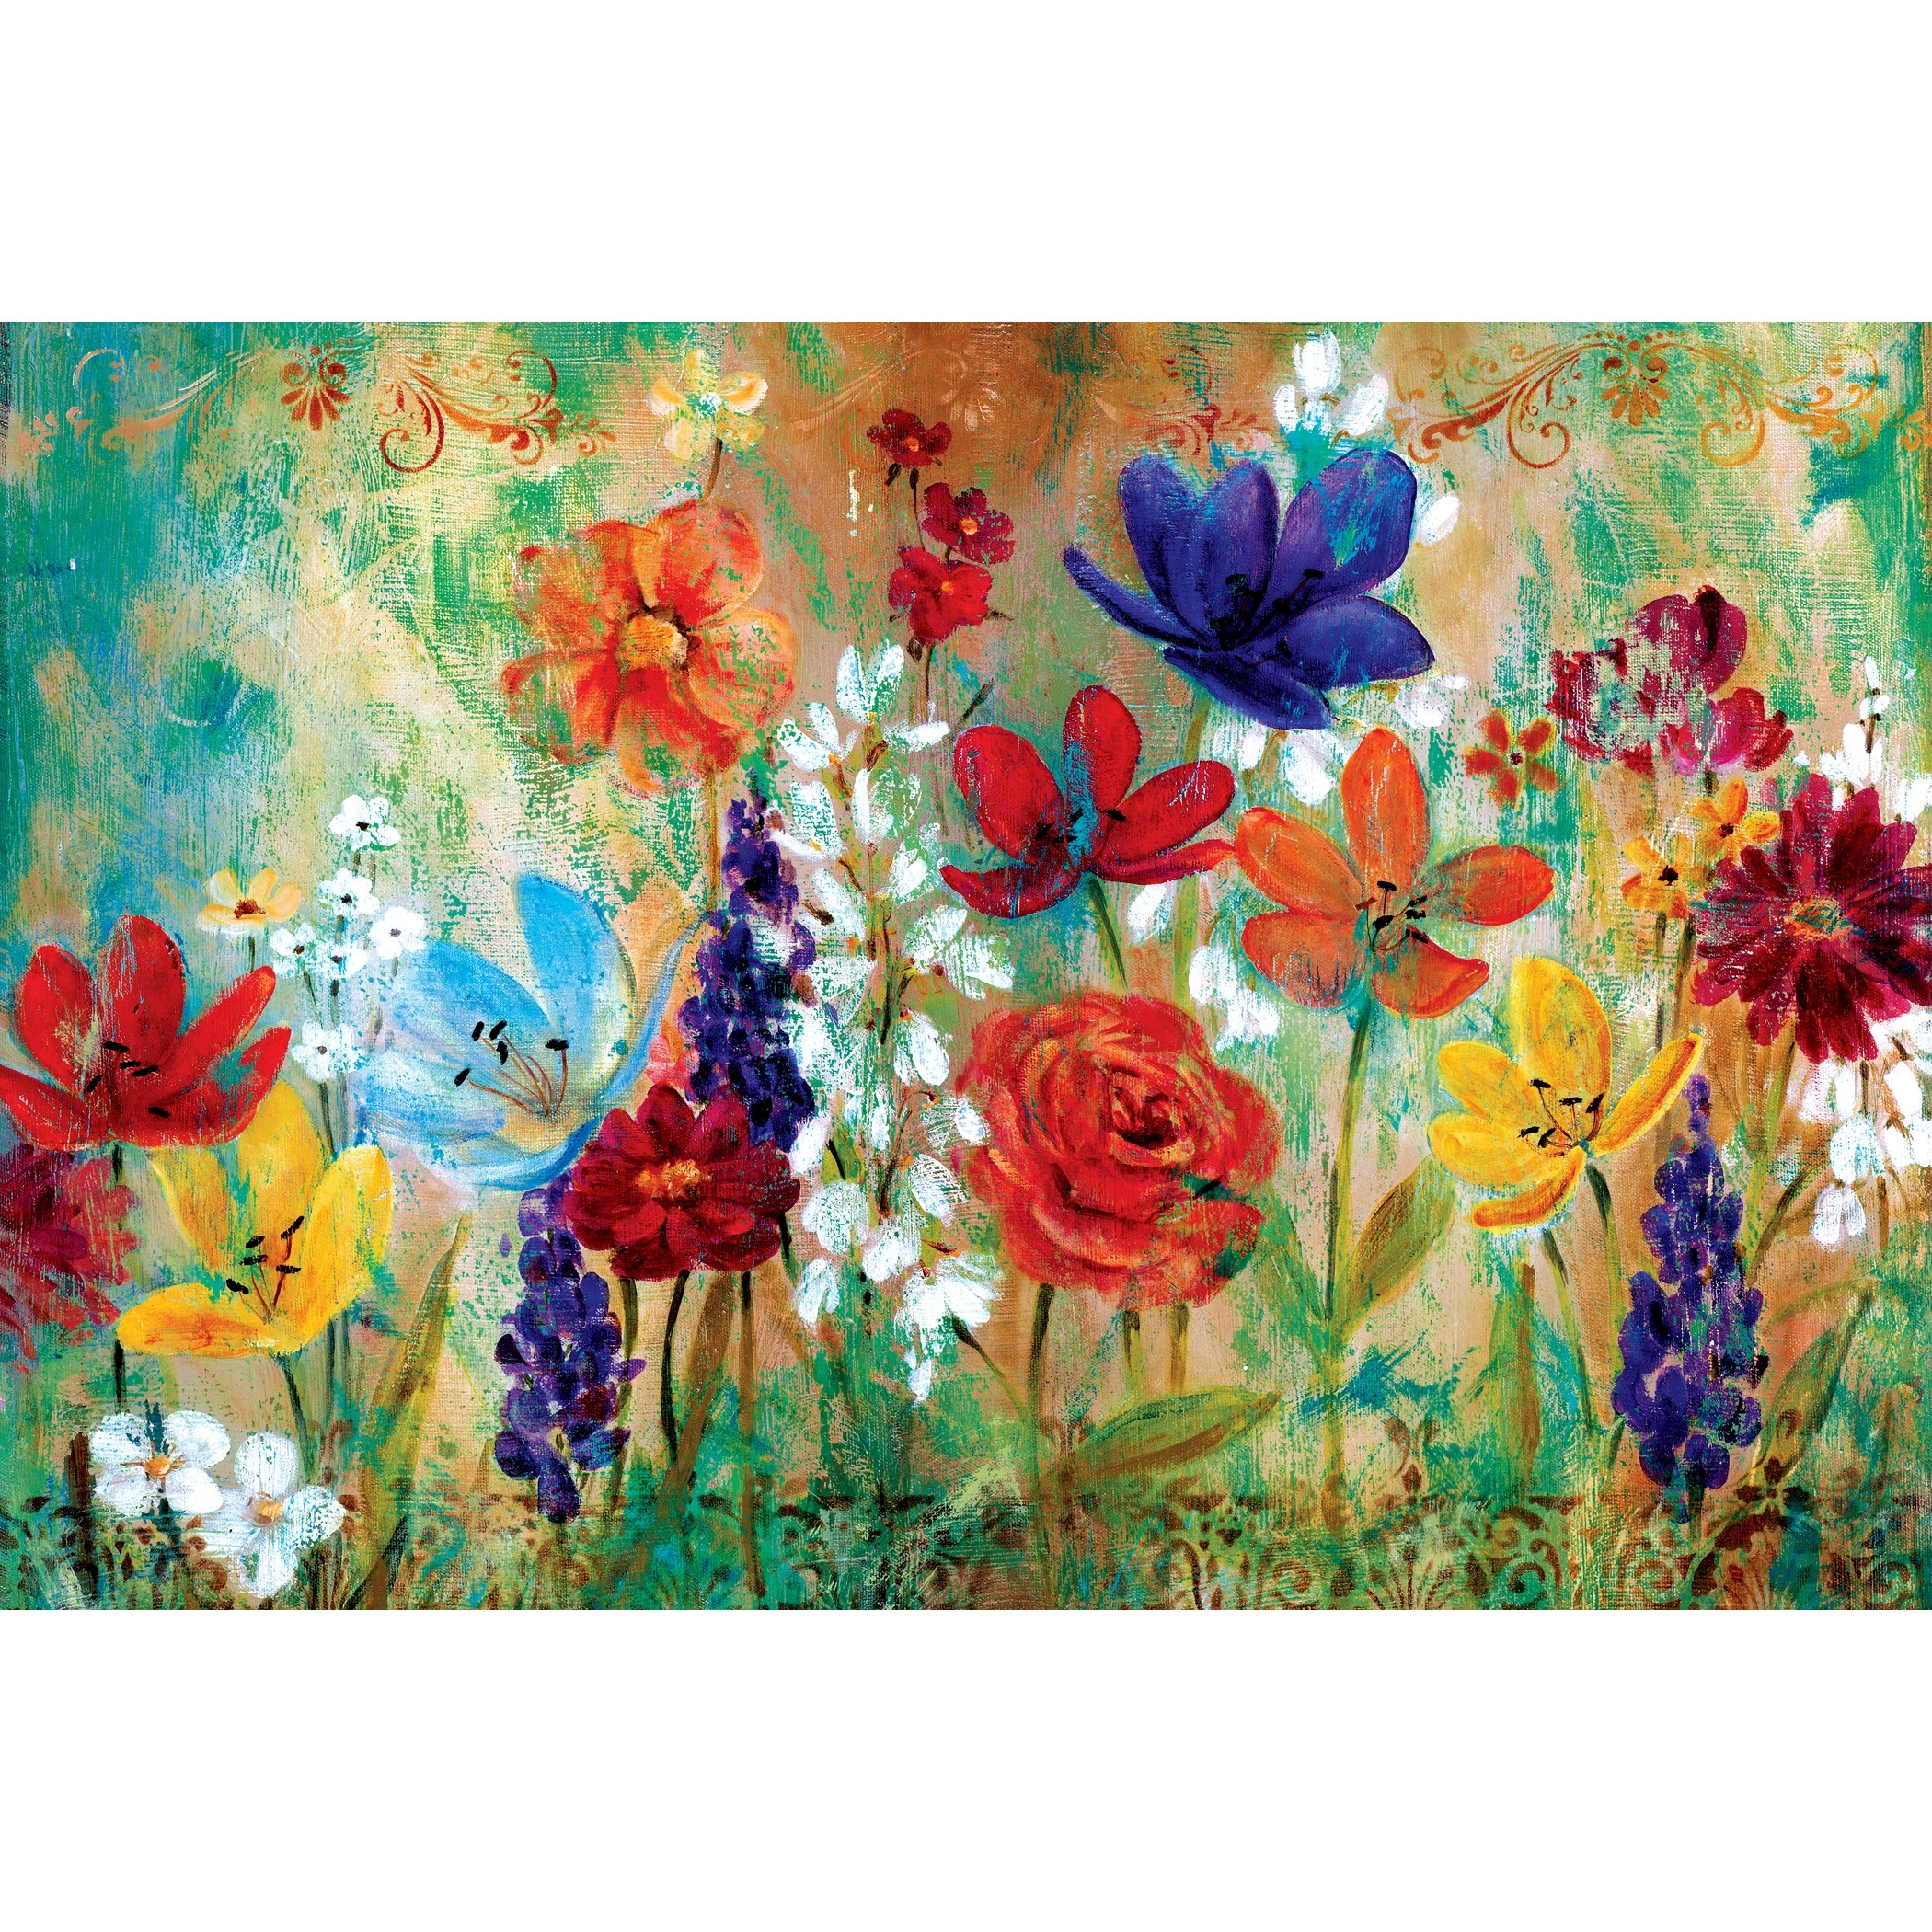 Canvas Wall Art At Wayfair Pertaining To Most Current Portfolio Canvas Decor Wildflower Fresco Ie (View 15 of 15)